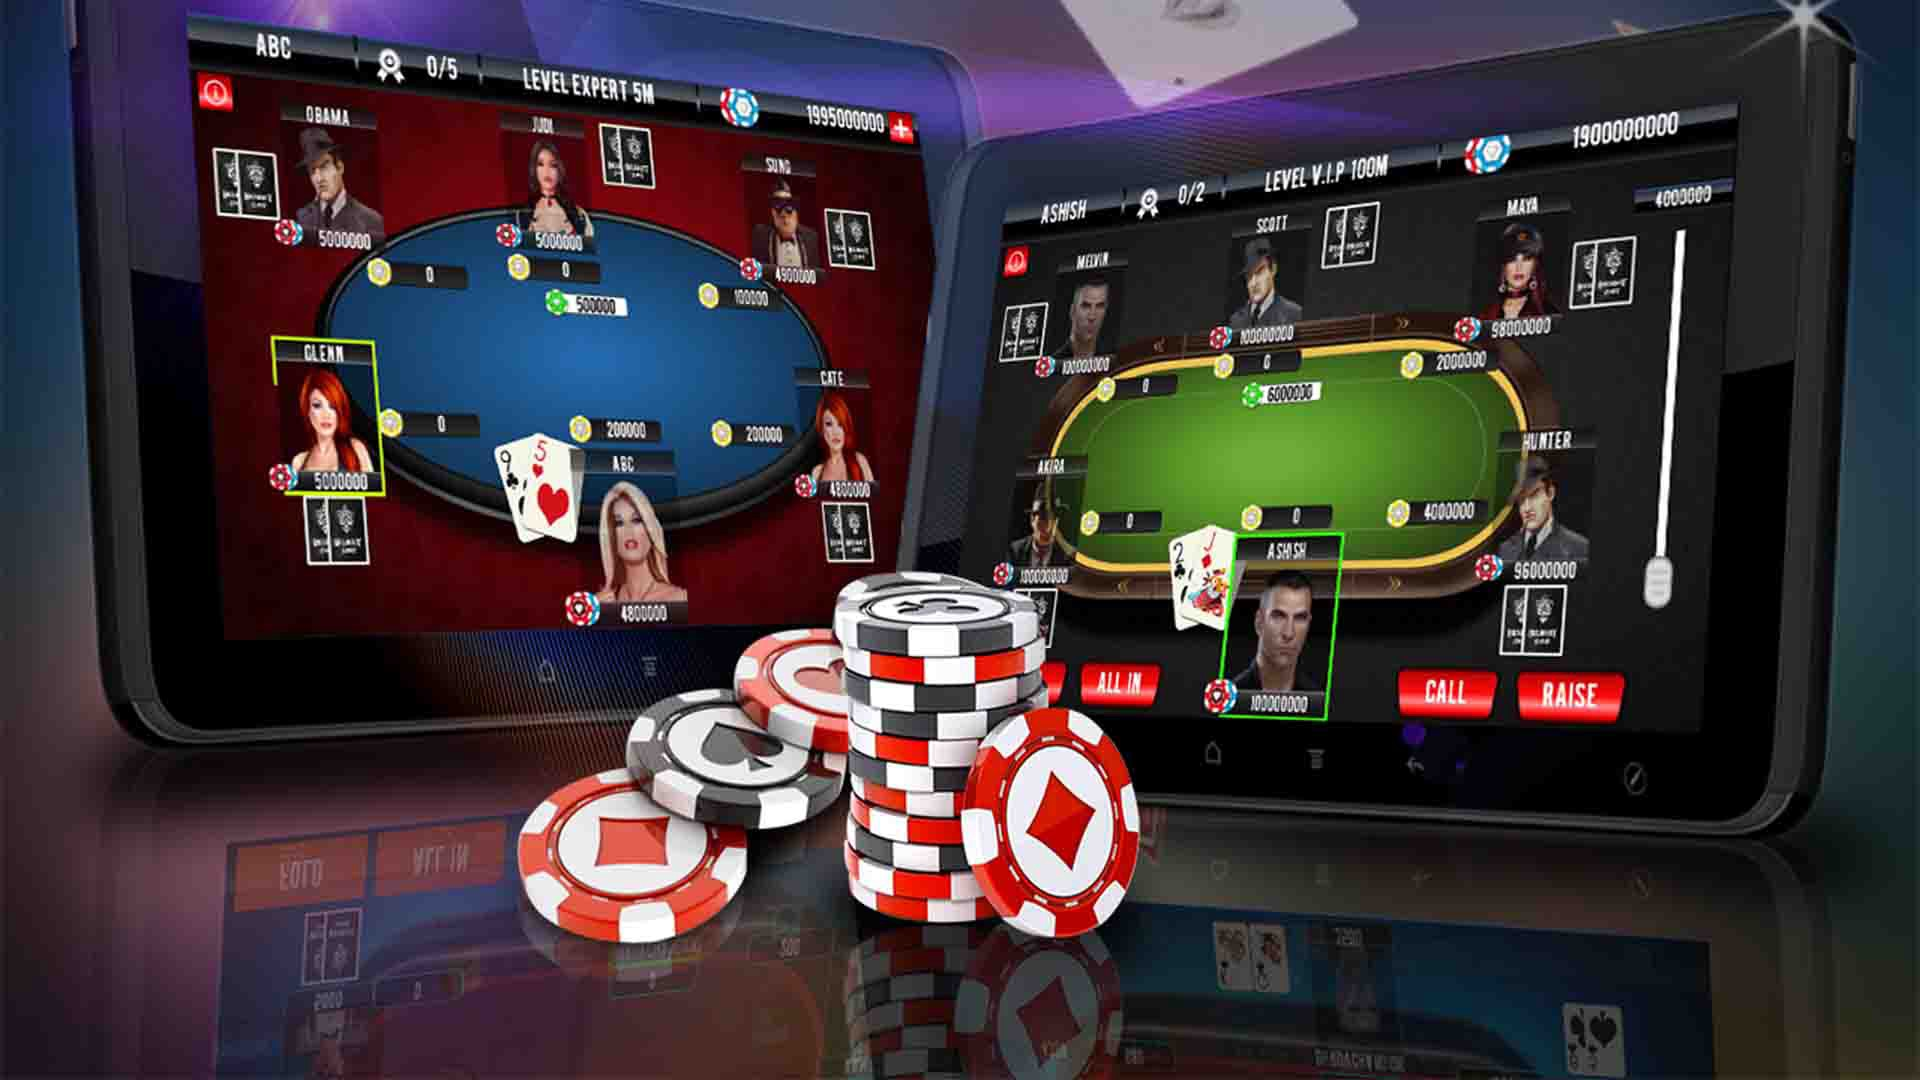 Discover Why You Need The Expert Casino Site To Land Your Big Pay Day Here